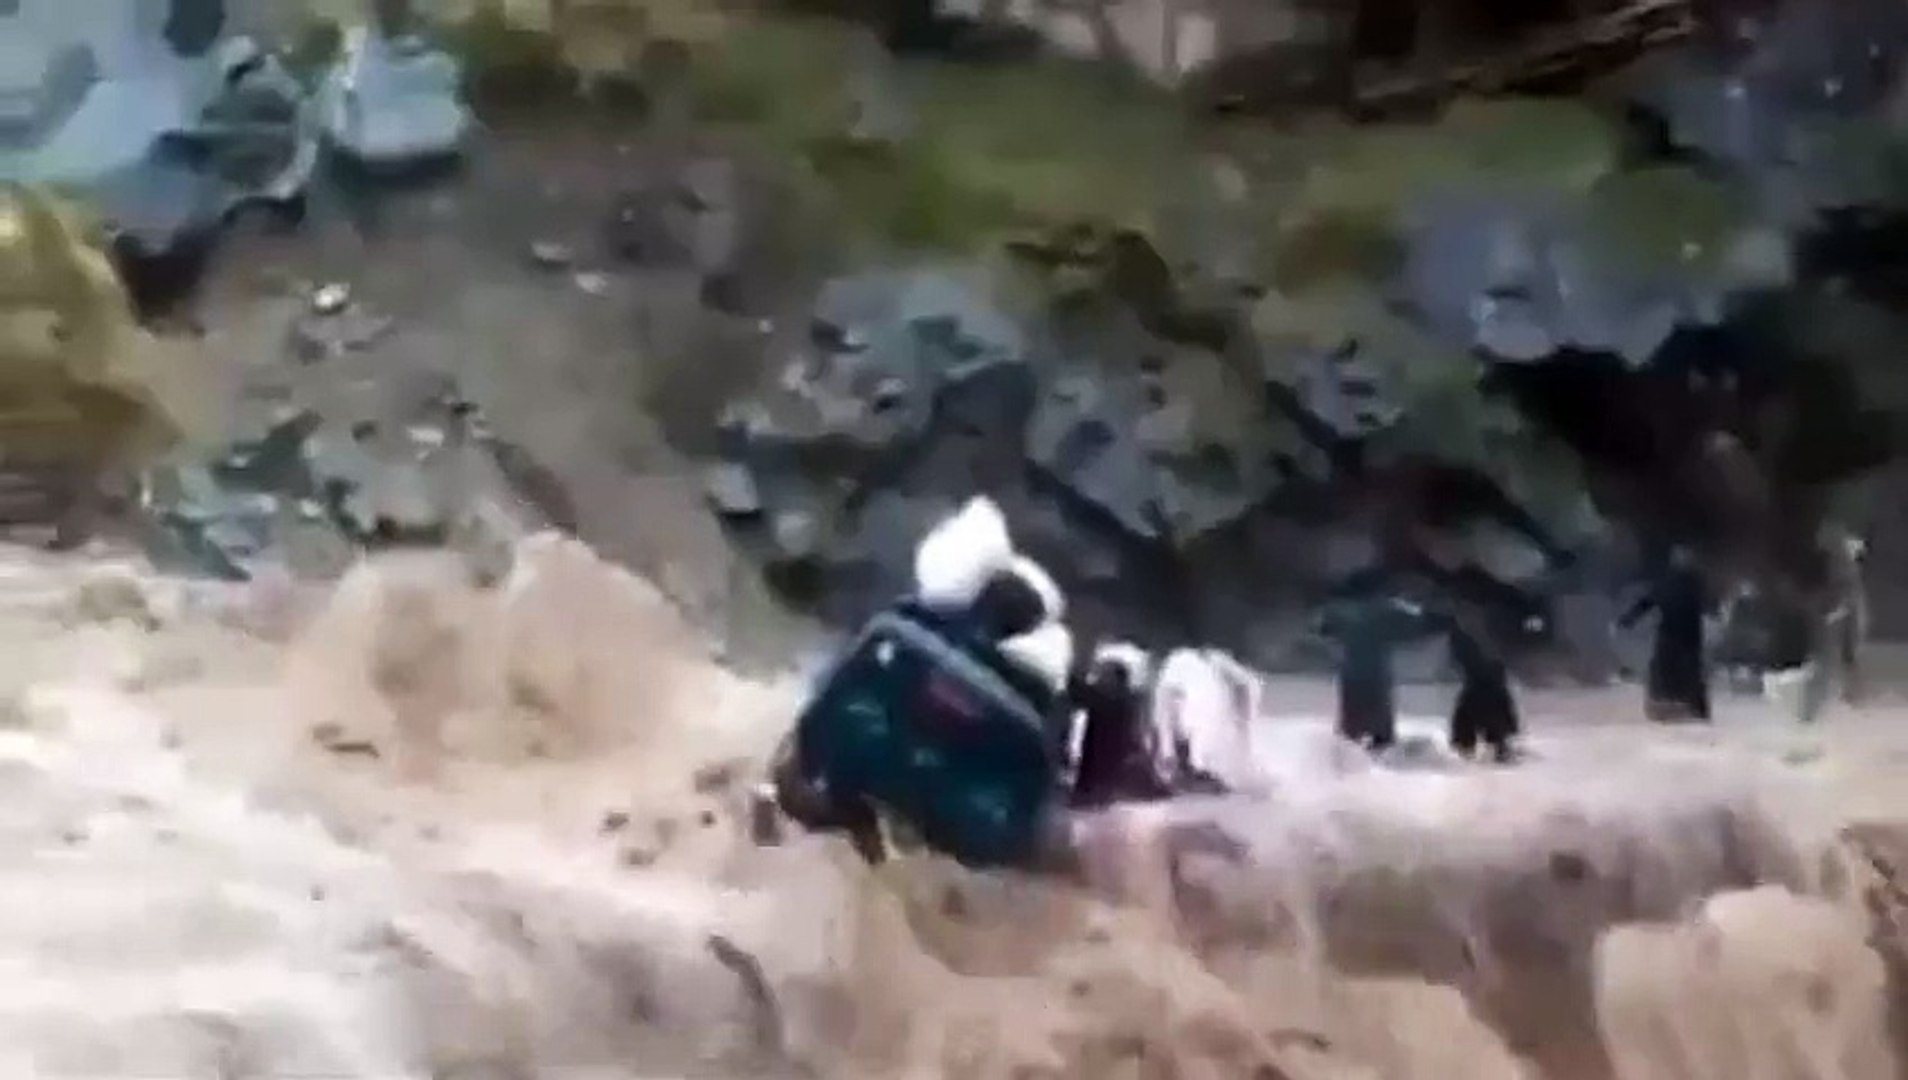 OMG flood in chitral,and watch this accident in flood allah O akbar